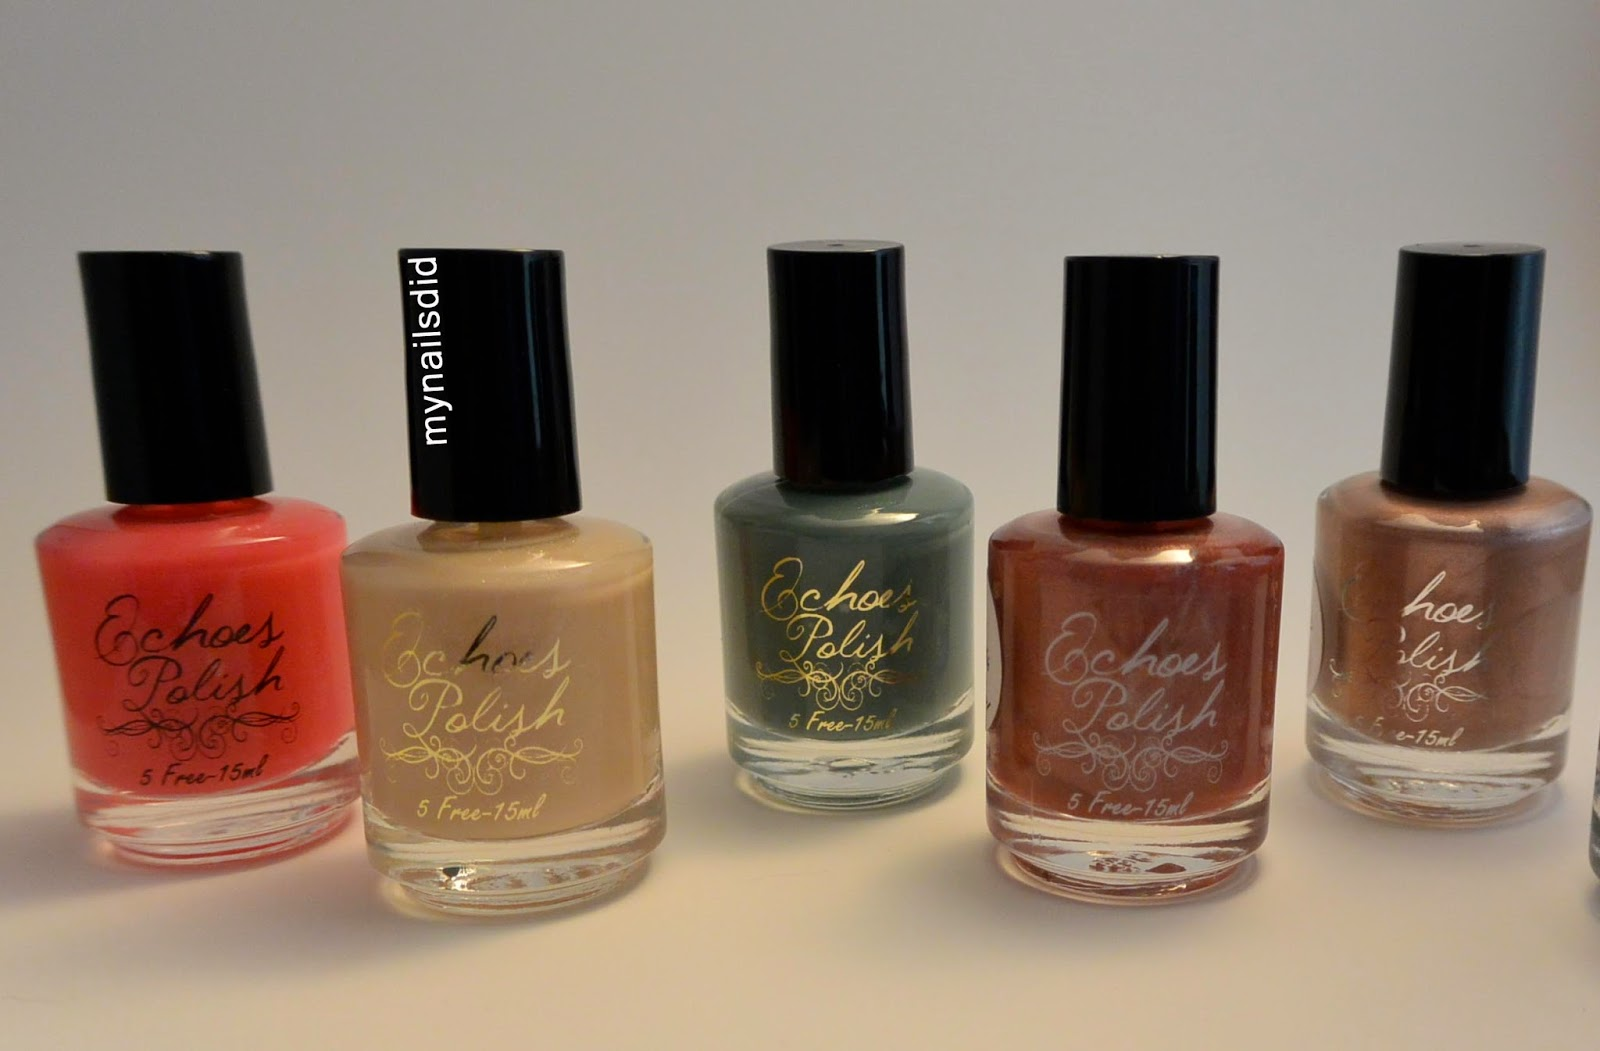 My Nails Did; Echoes Polish Indie Nail polish haul